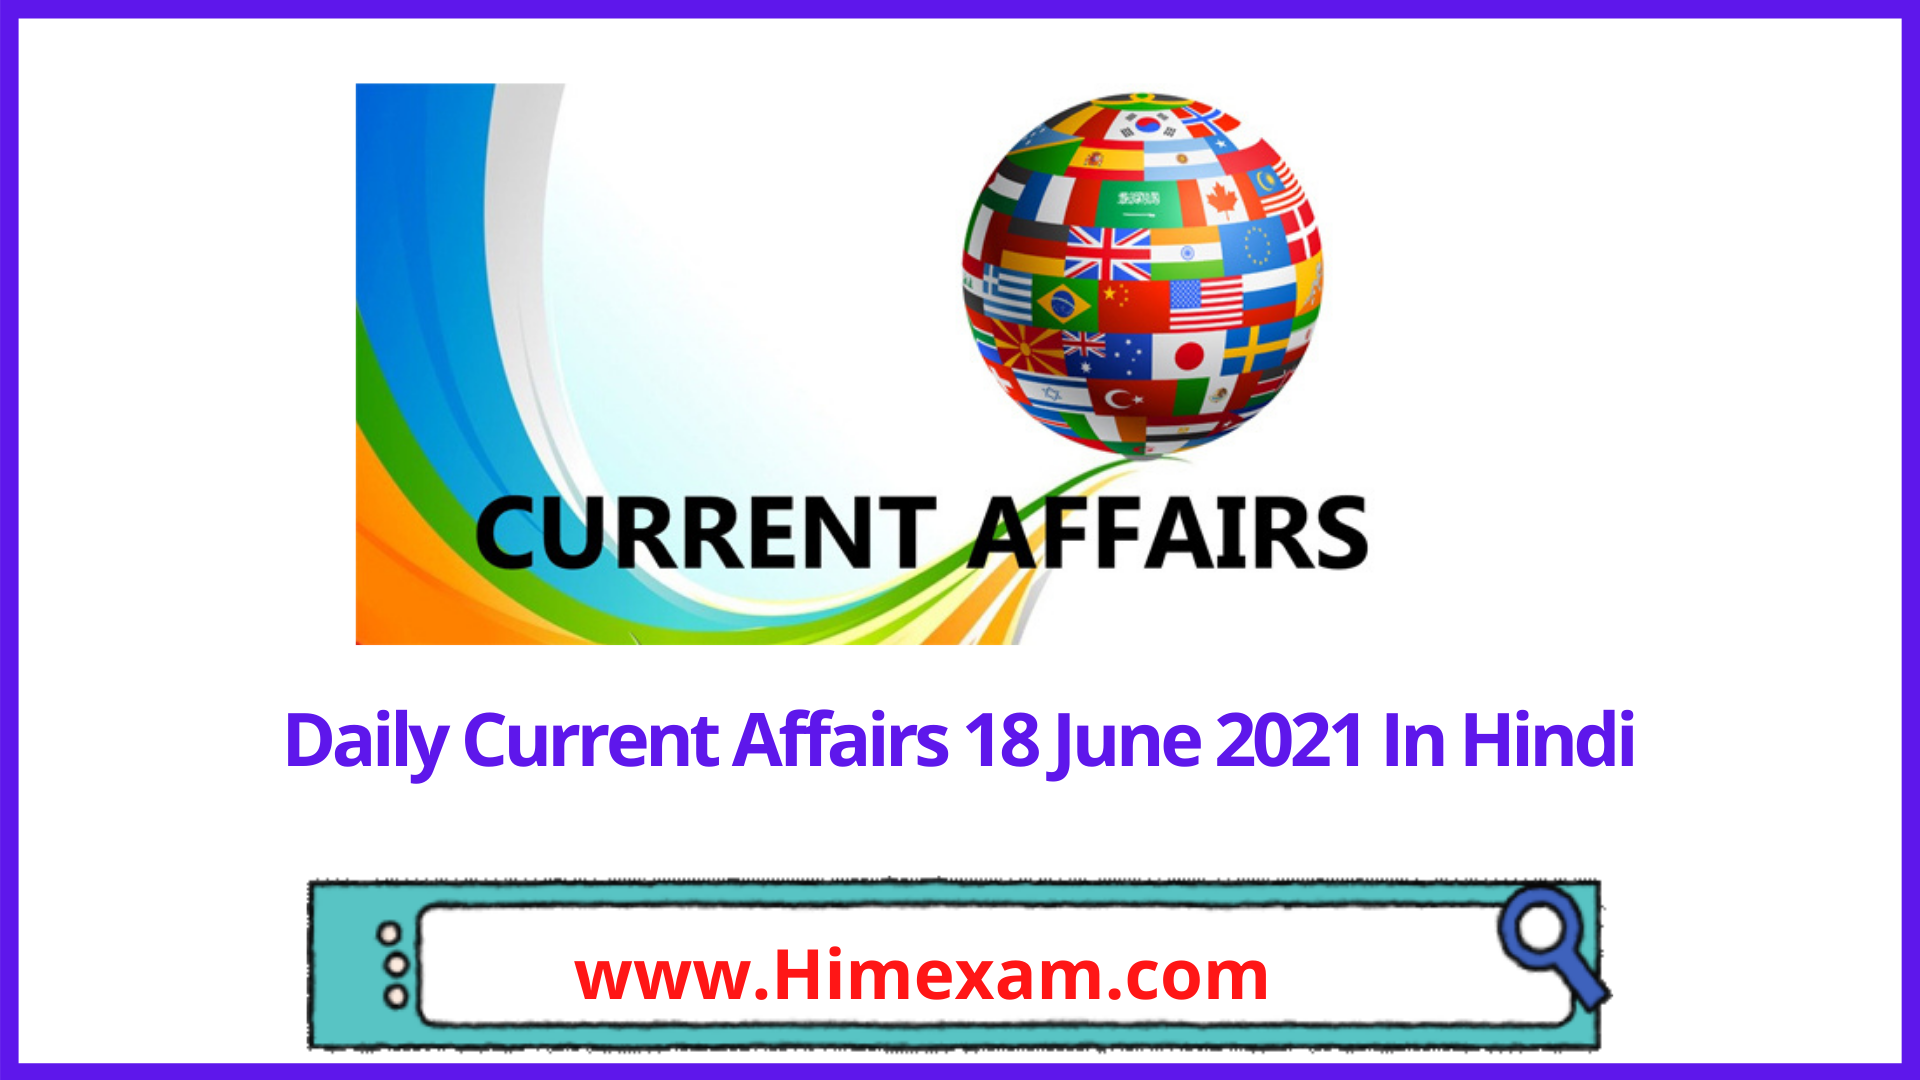 Daily Current Affairs 18 June 2021 In Hindi